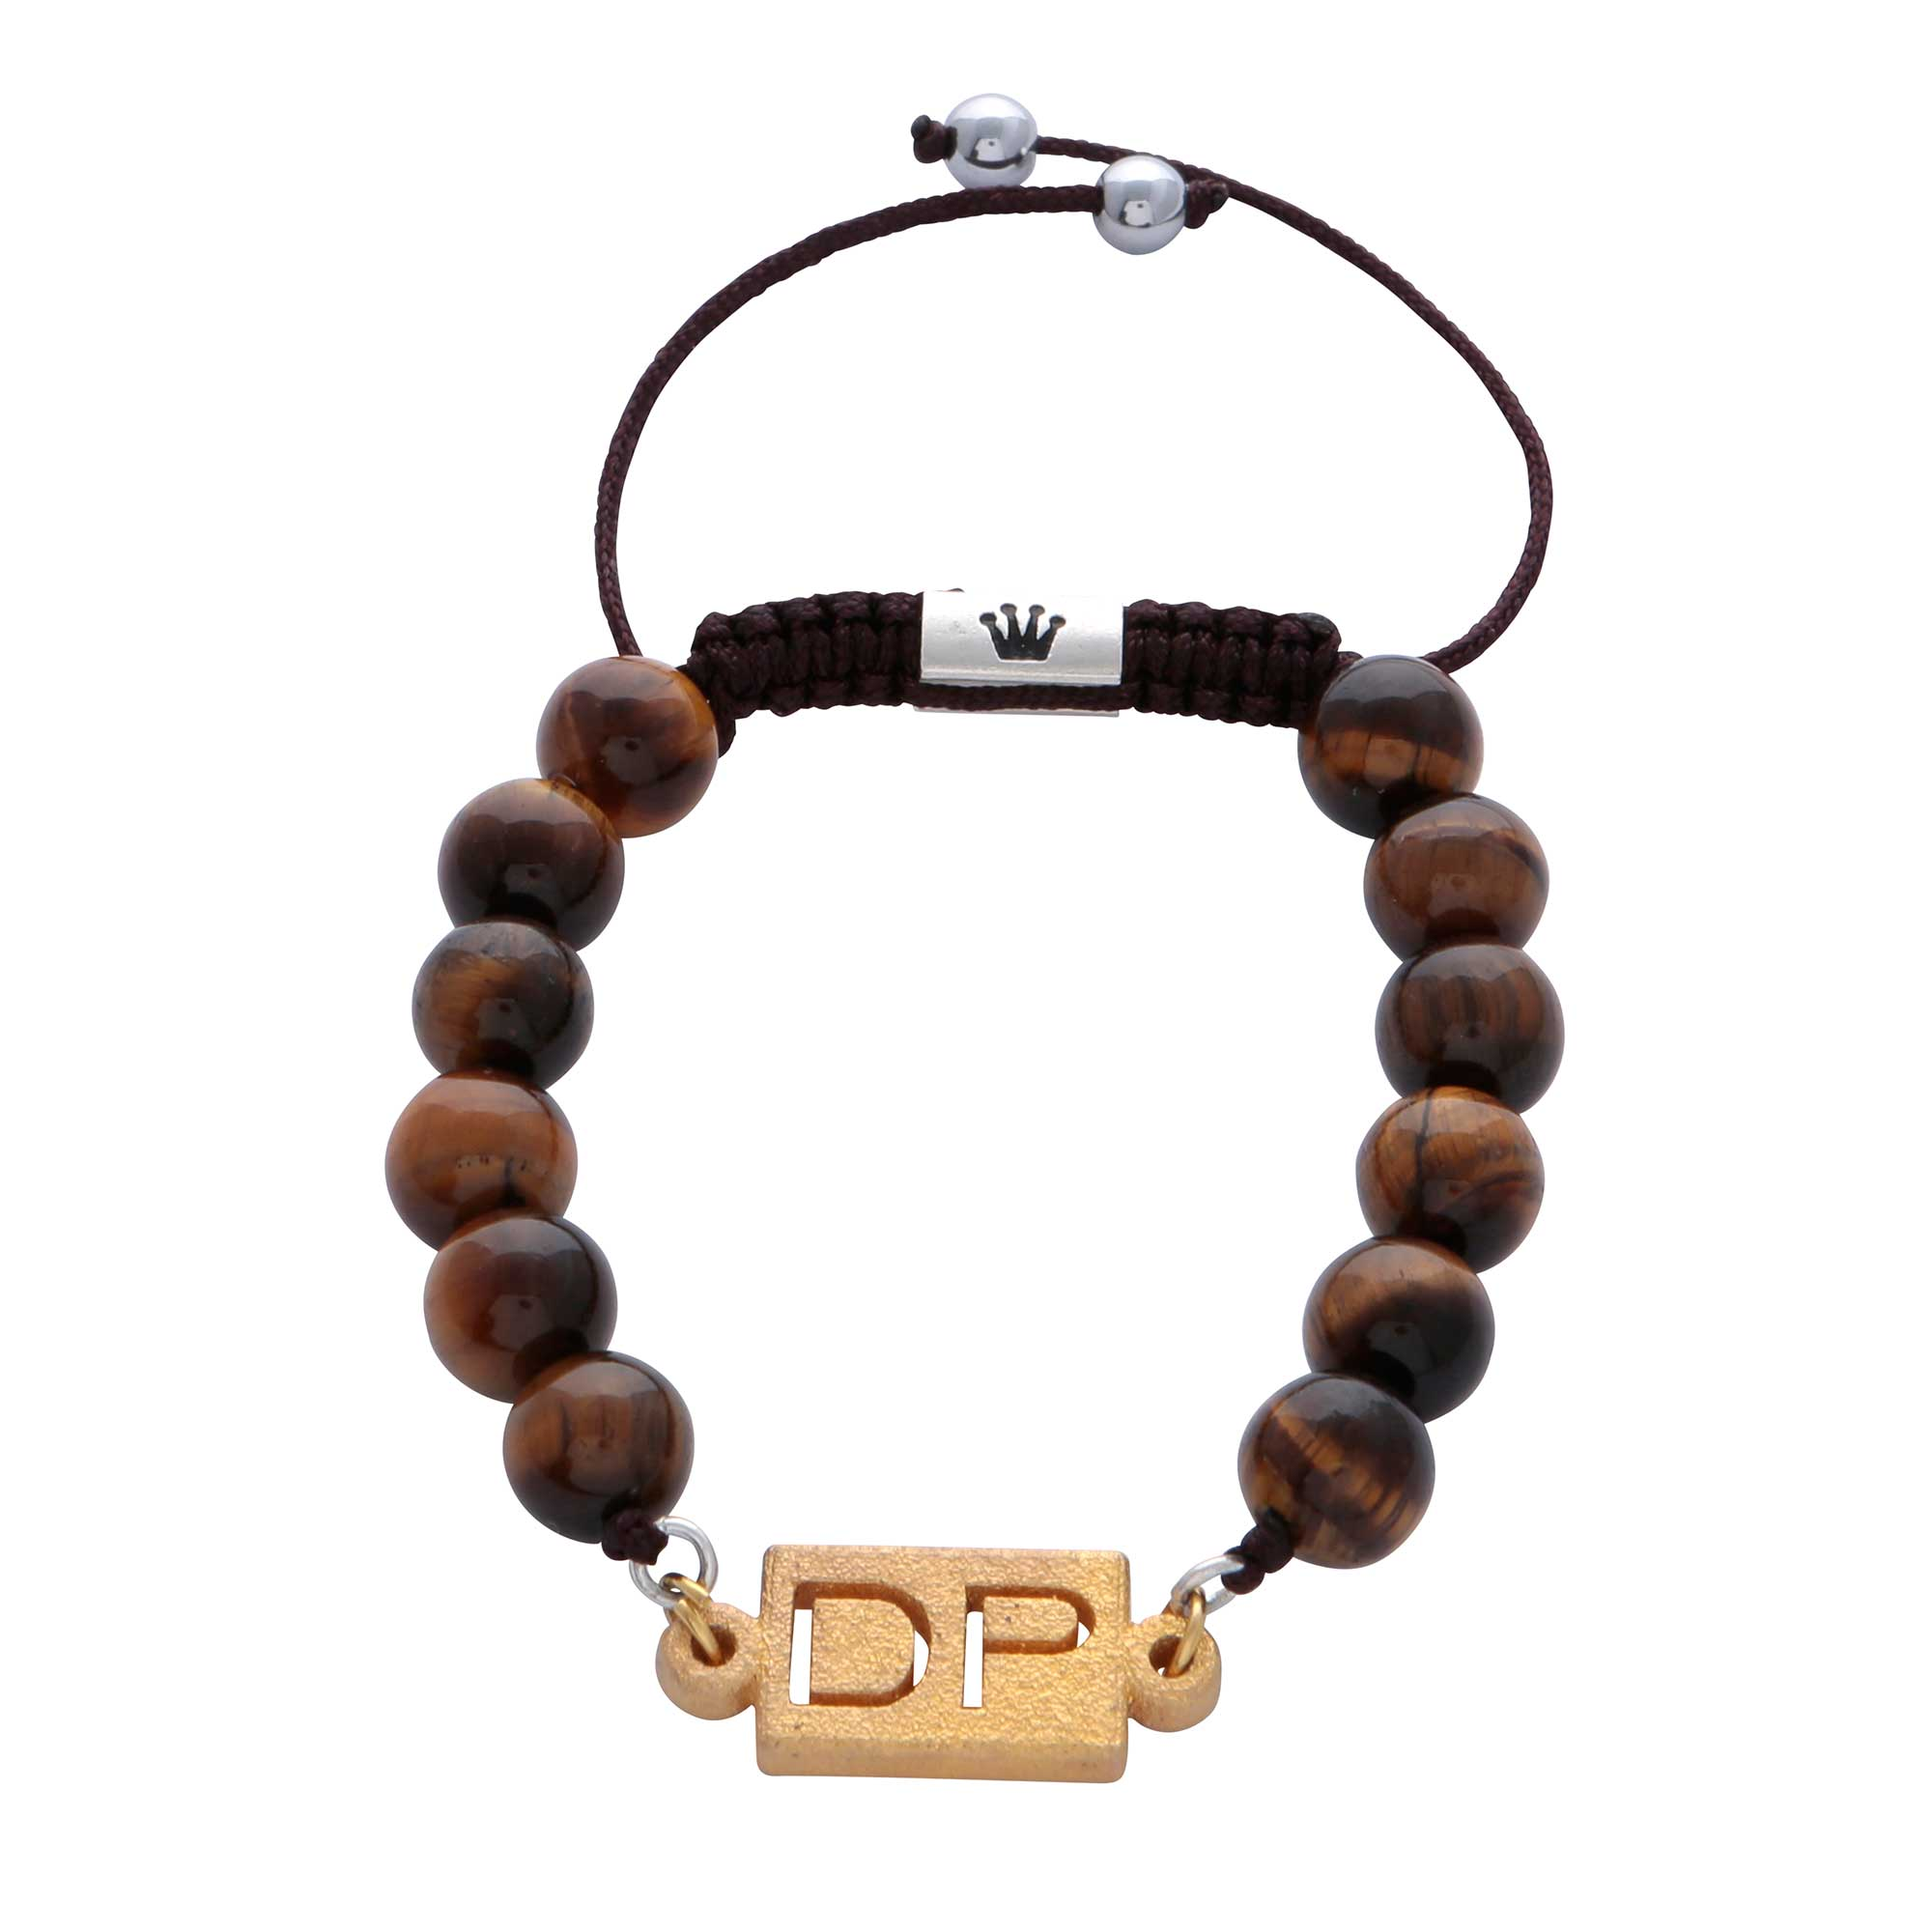 owl bead tiger bracelet natural energy products jewelry eye head pulseras charm buddha lion bangles beads yoga stone hombre bracelets